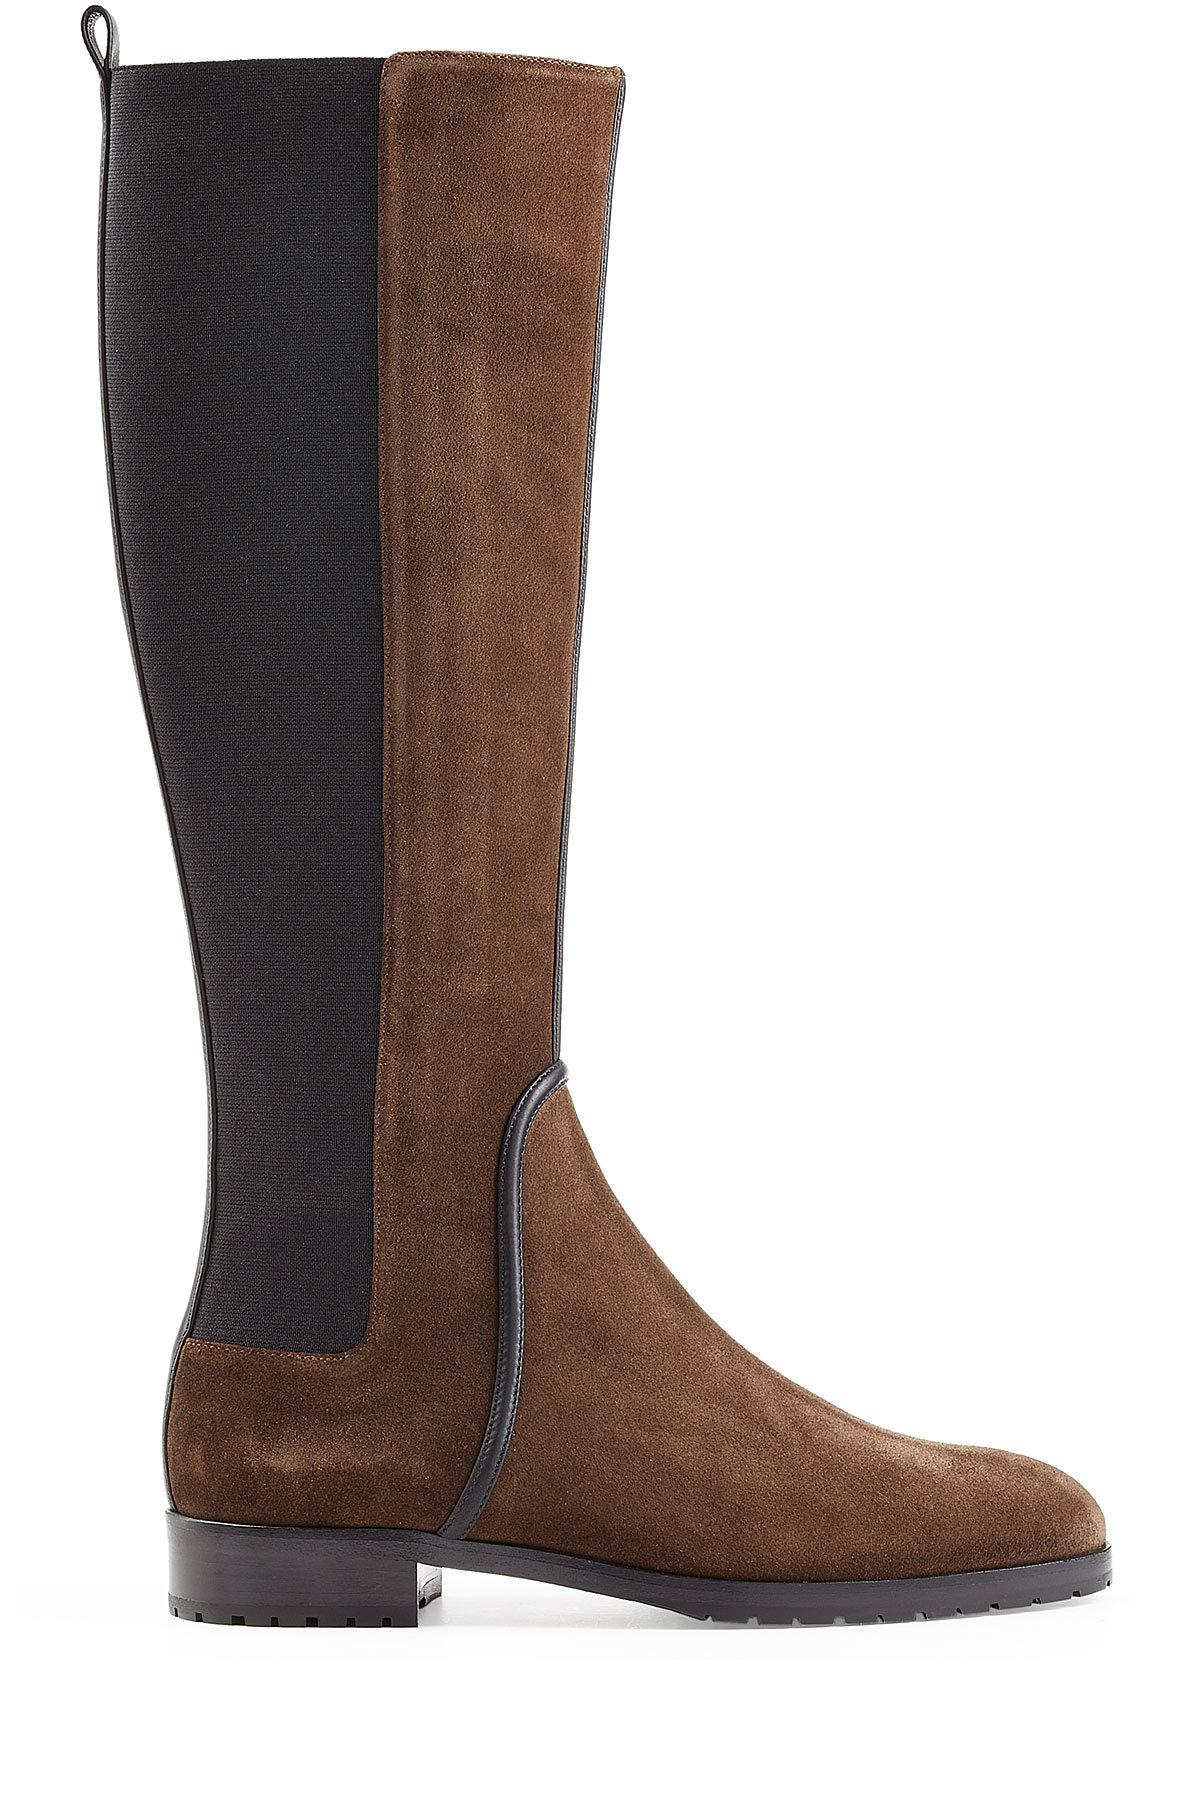 Lyst Sergio Rossi Suede Knee Boots In Brown